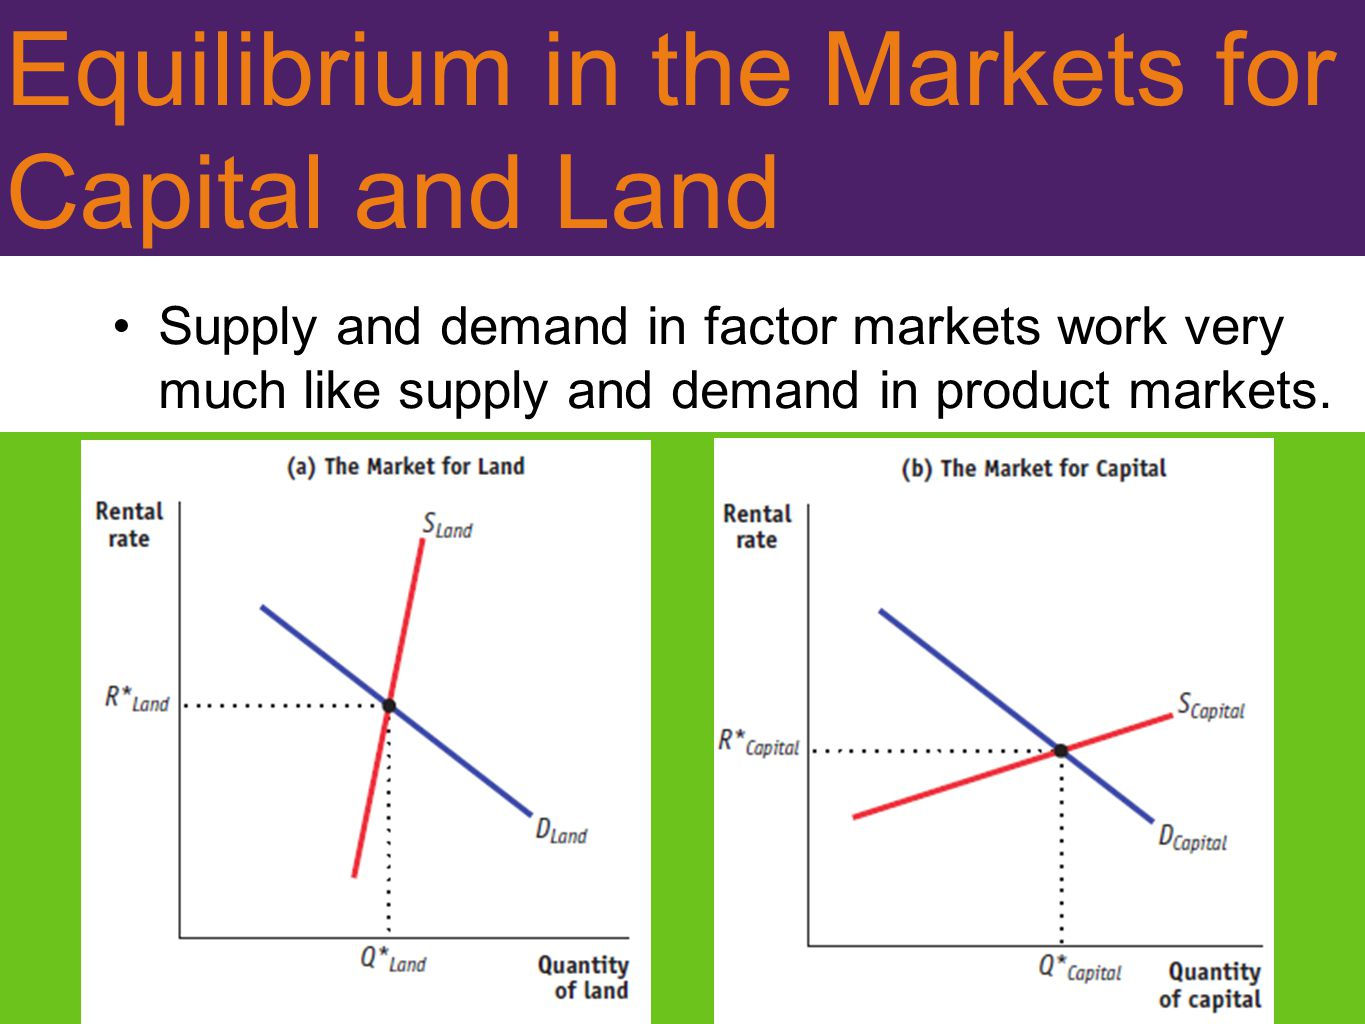 Equilibrium in the Markets for Capital and Land